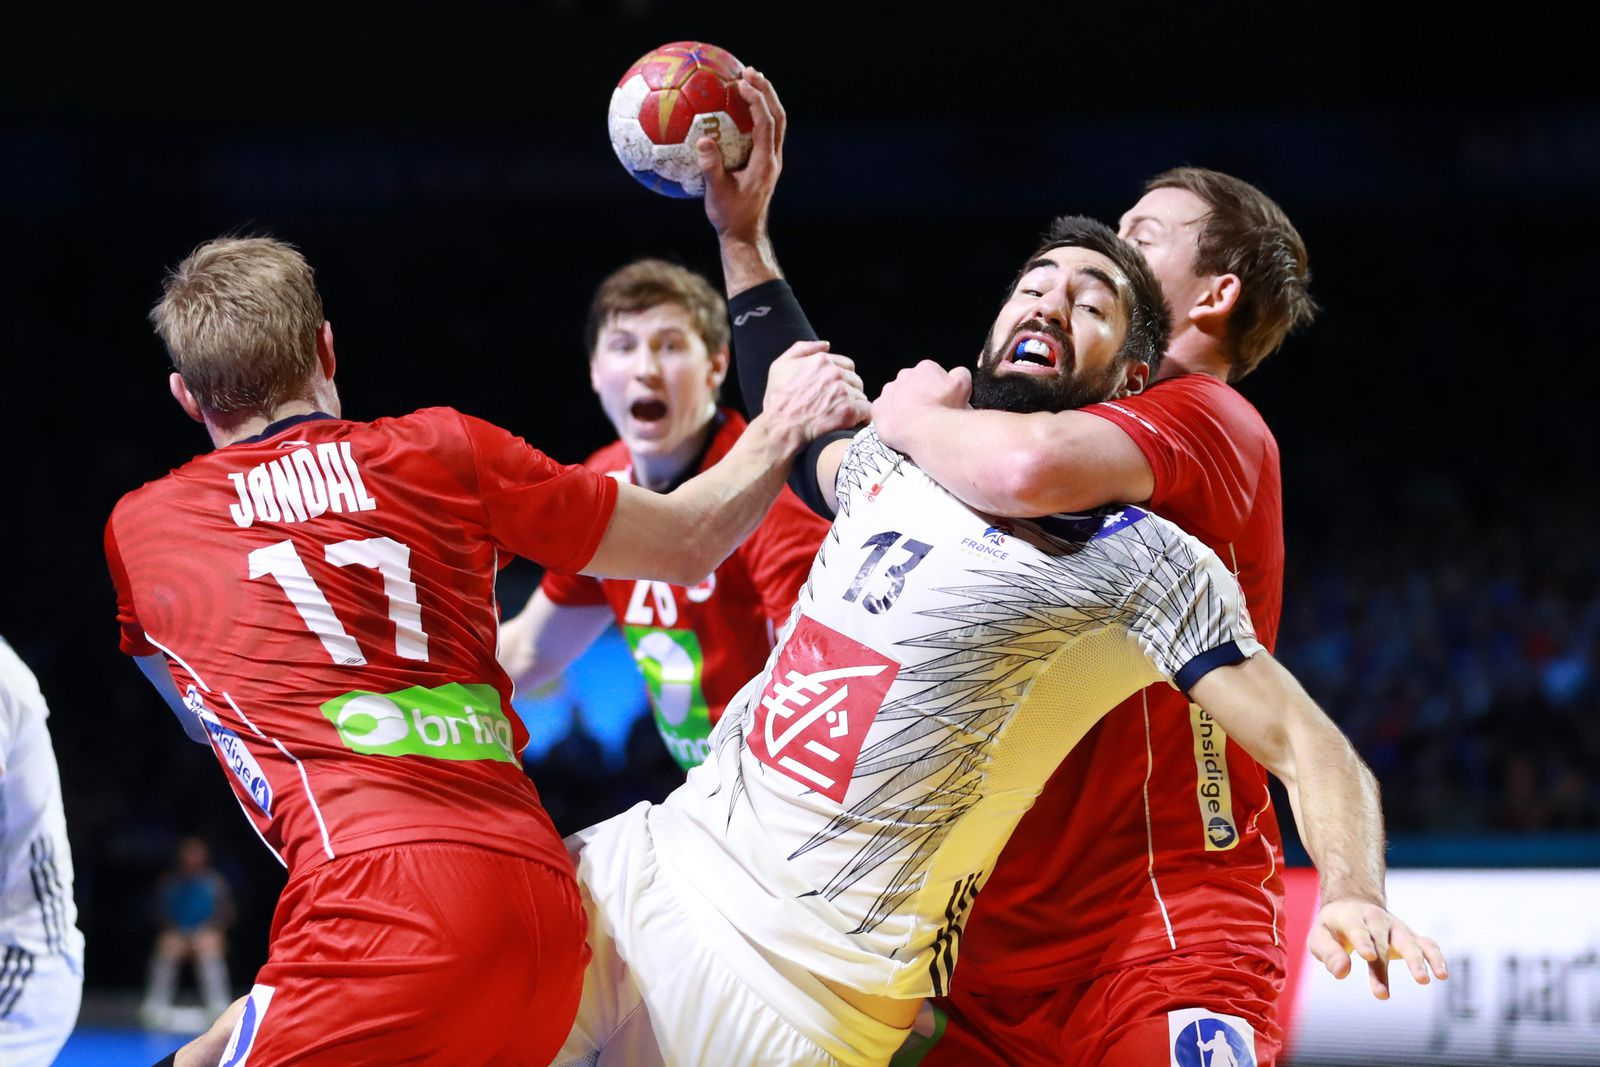 Nikola Karabatic et l'Equipe de France de Handball, soutenus par INDIBA depuis 2012 - crédit photo/S.Pillaud